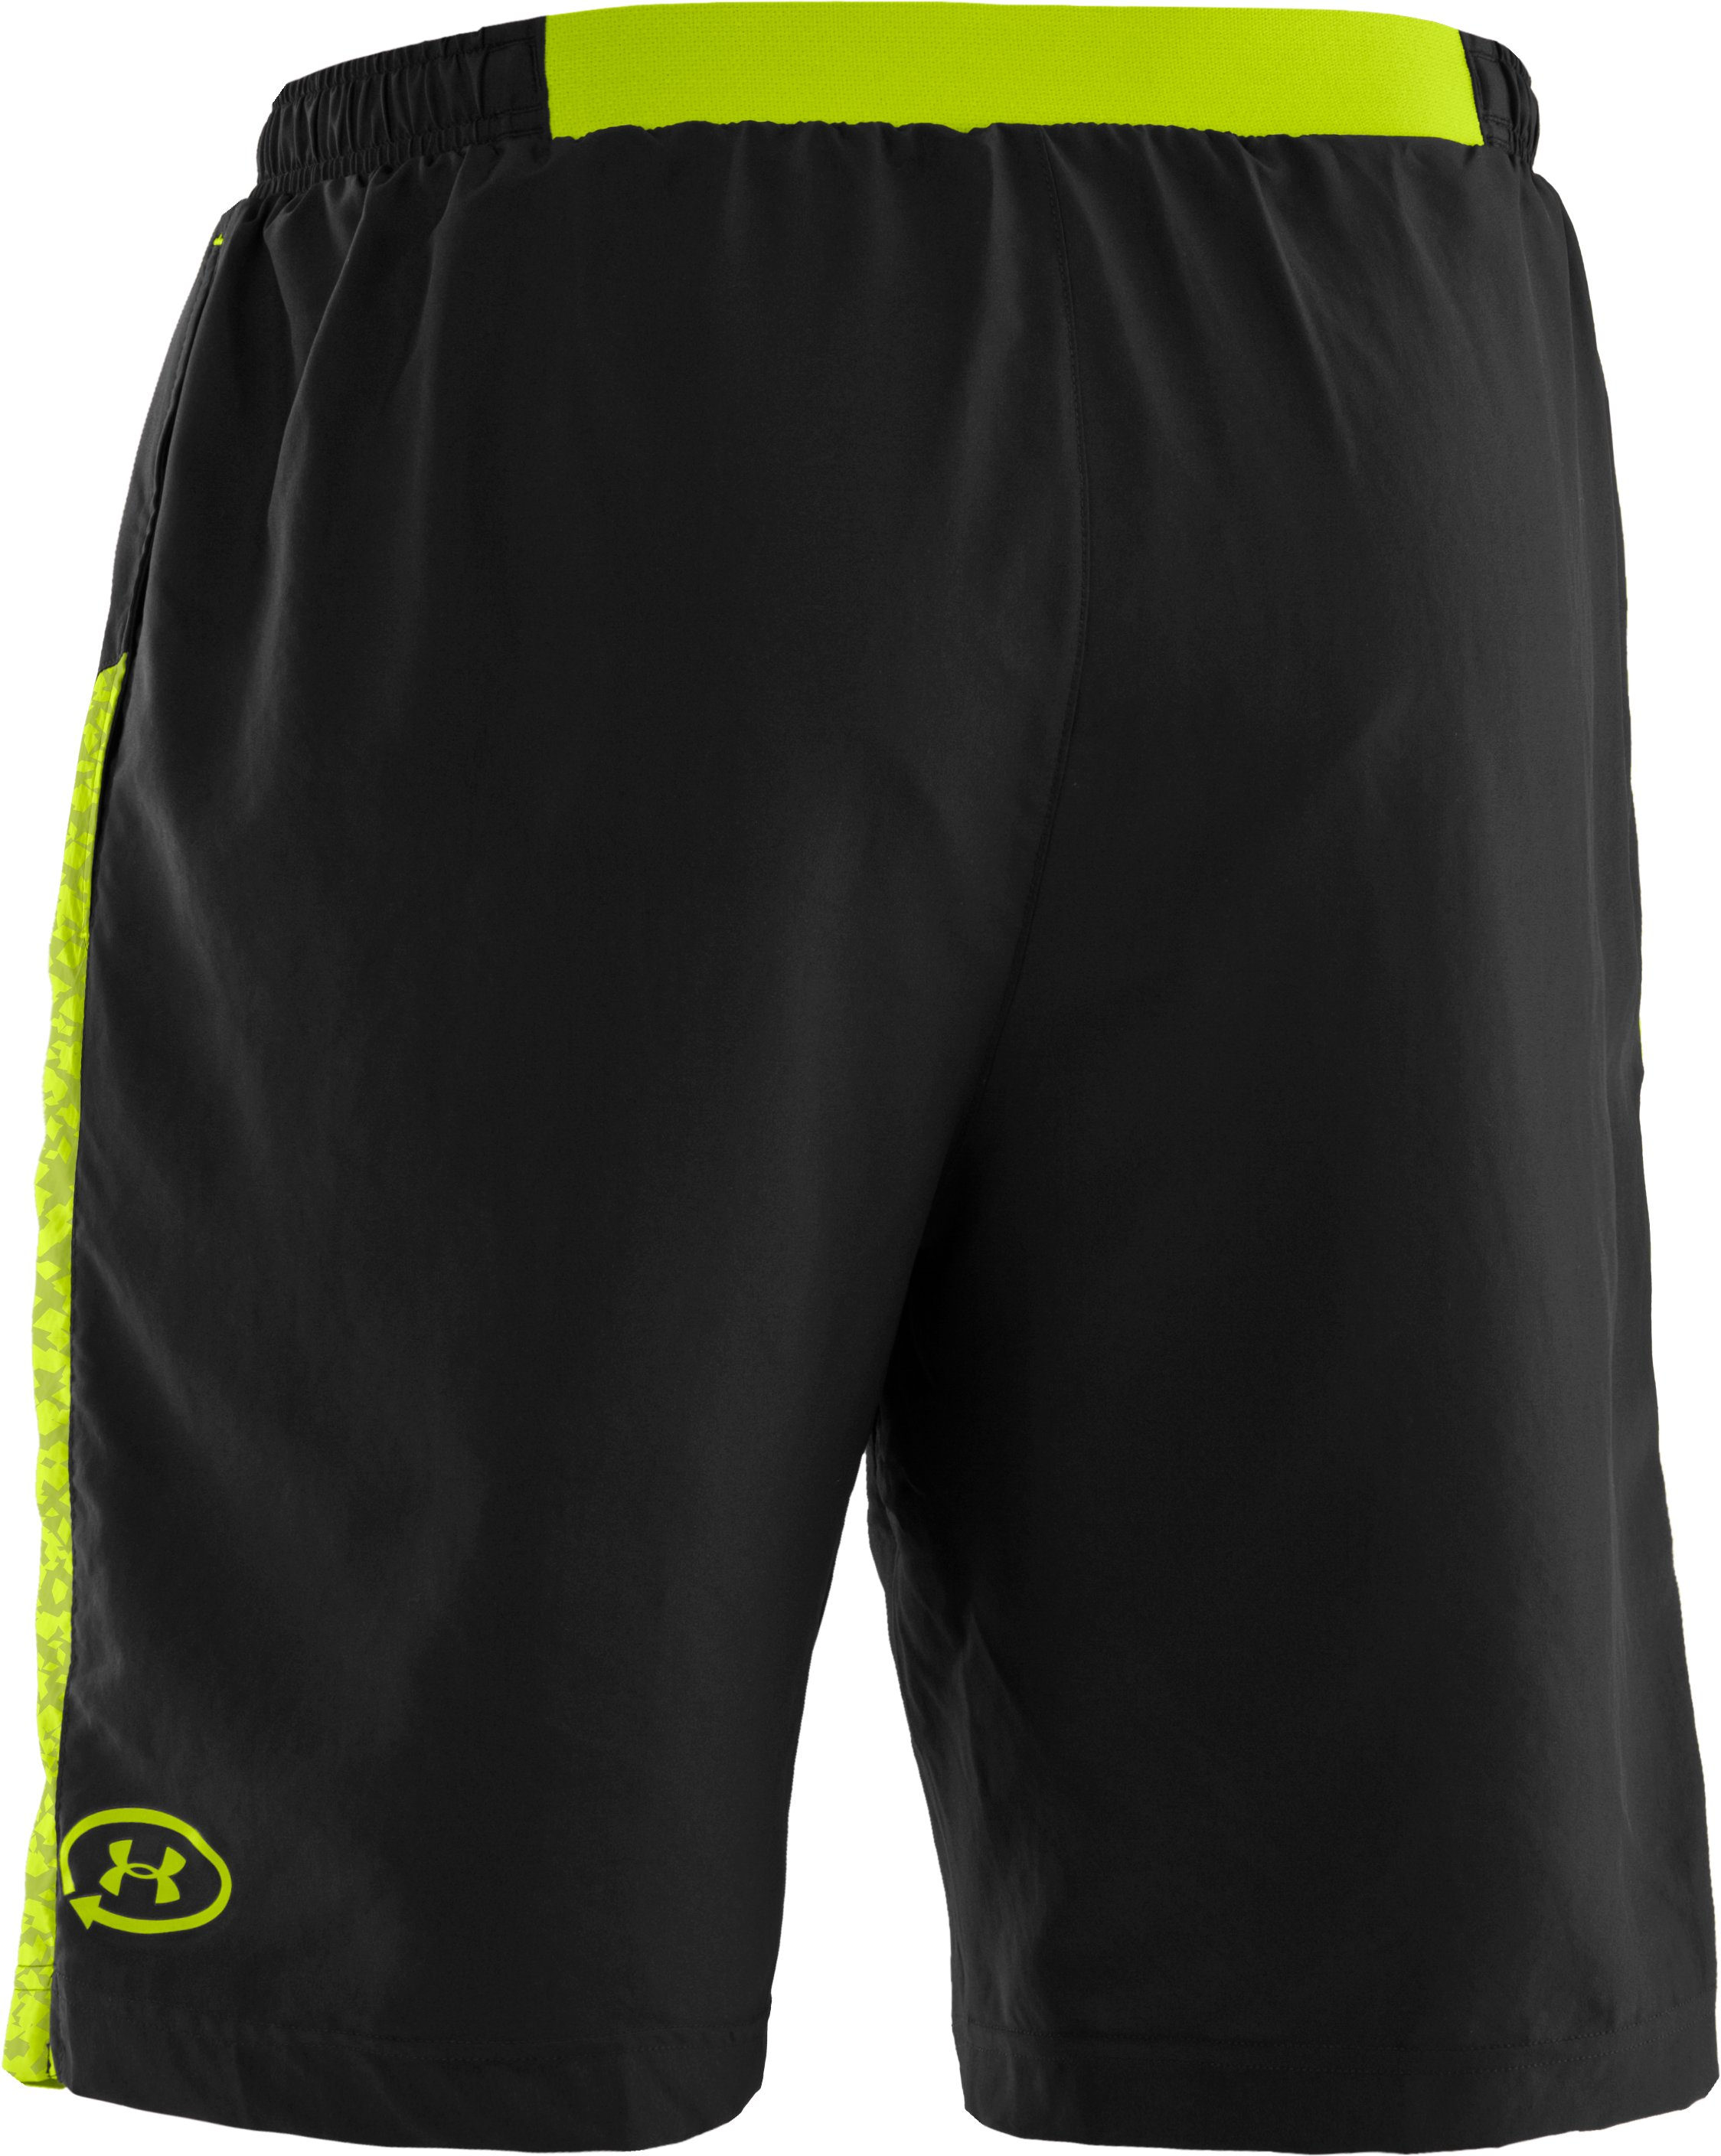 "Men's UA Anatomix Run 9"" Shorts, Black"